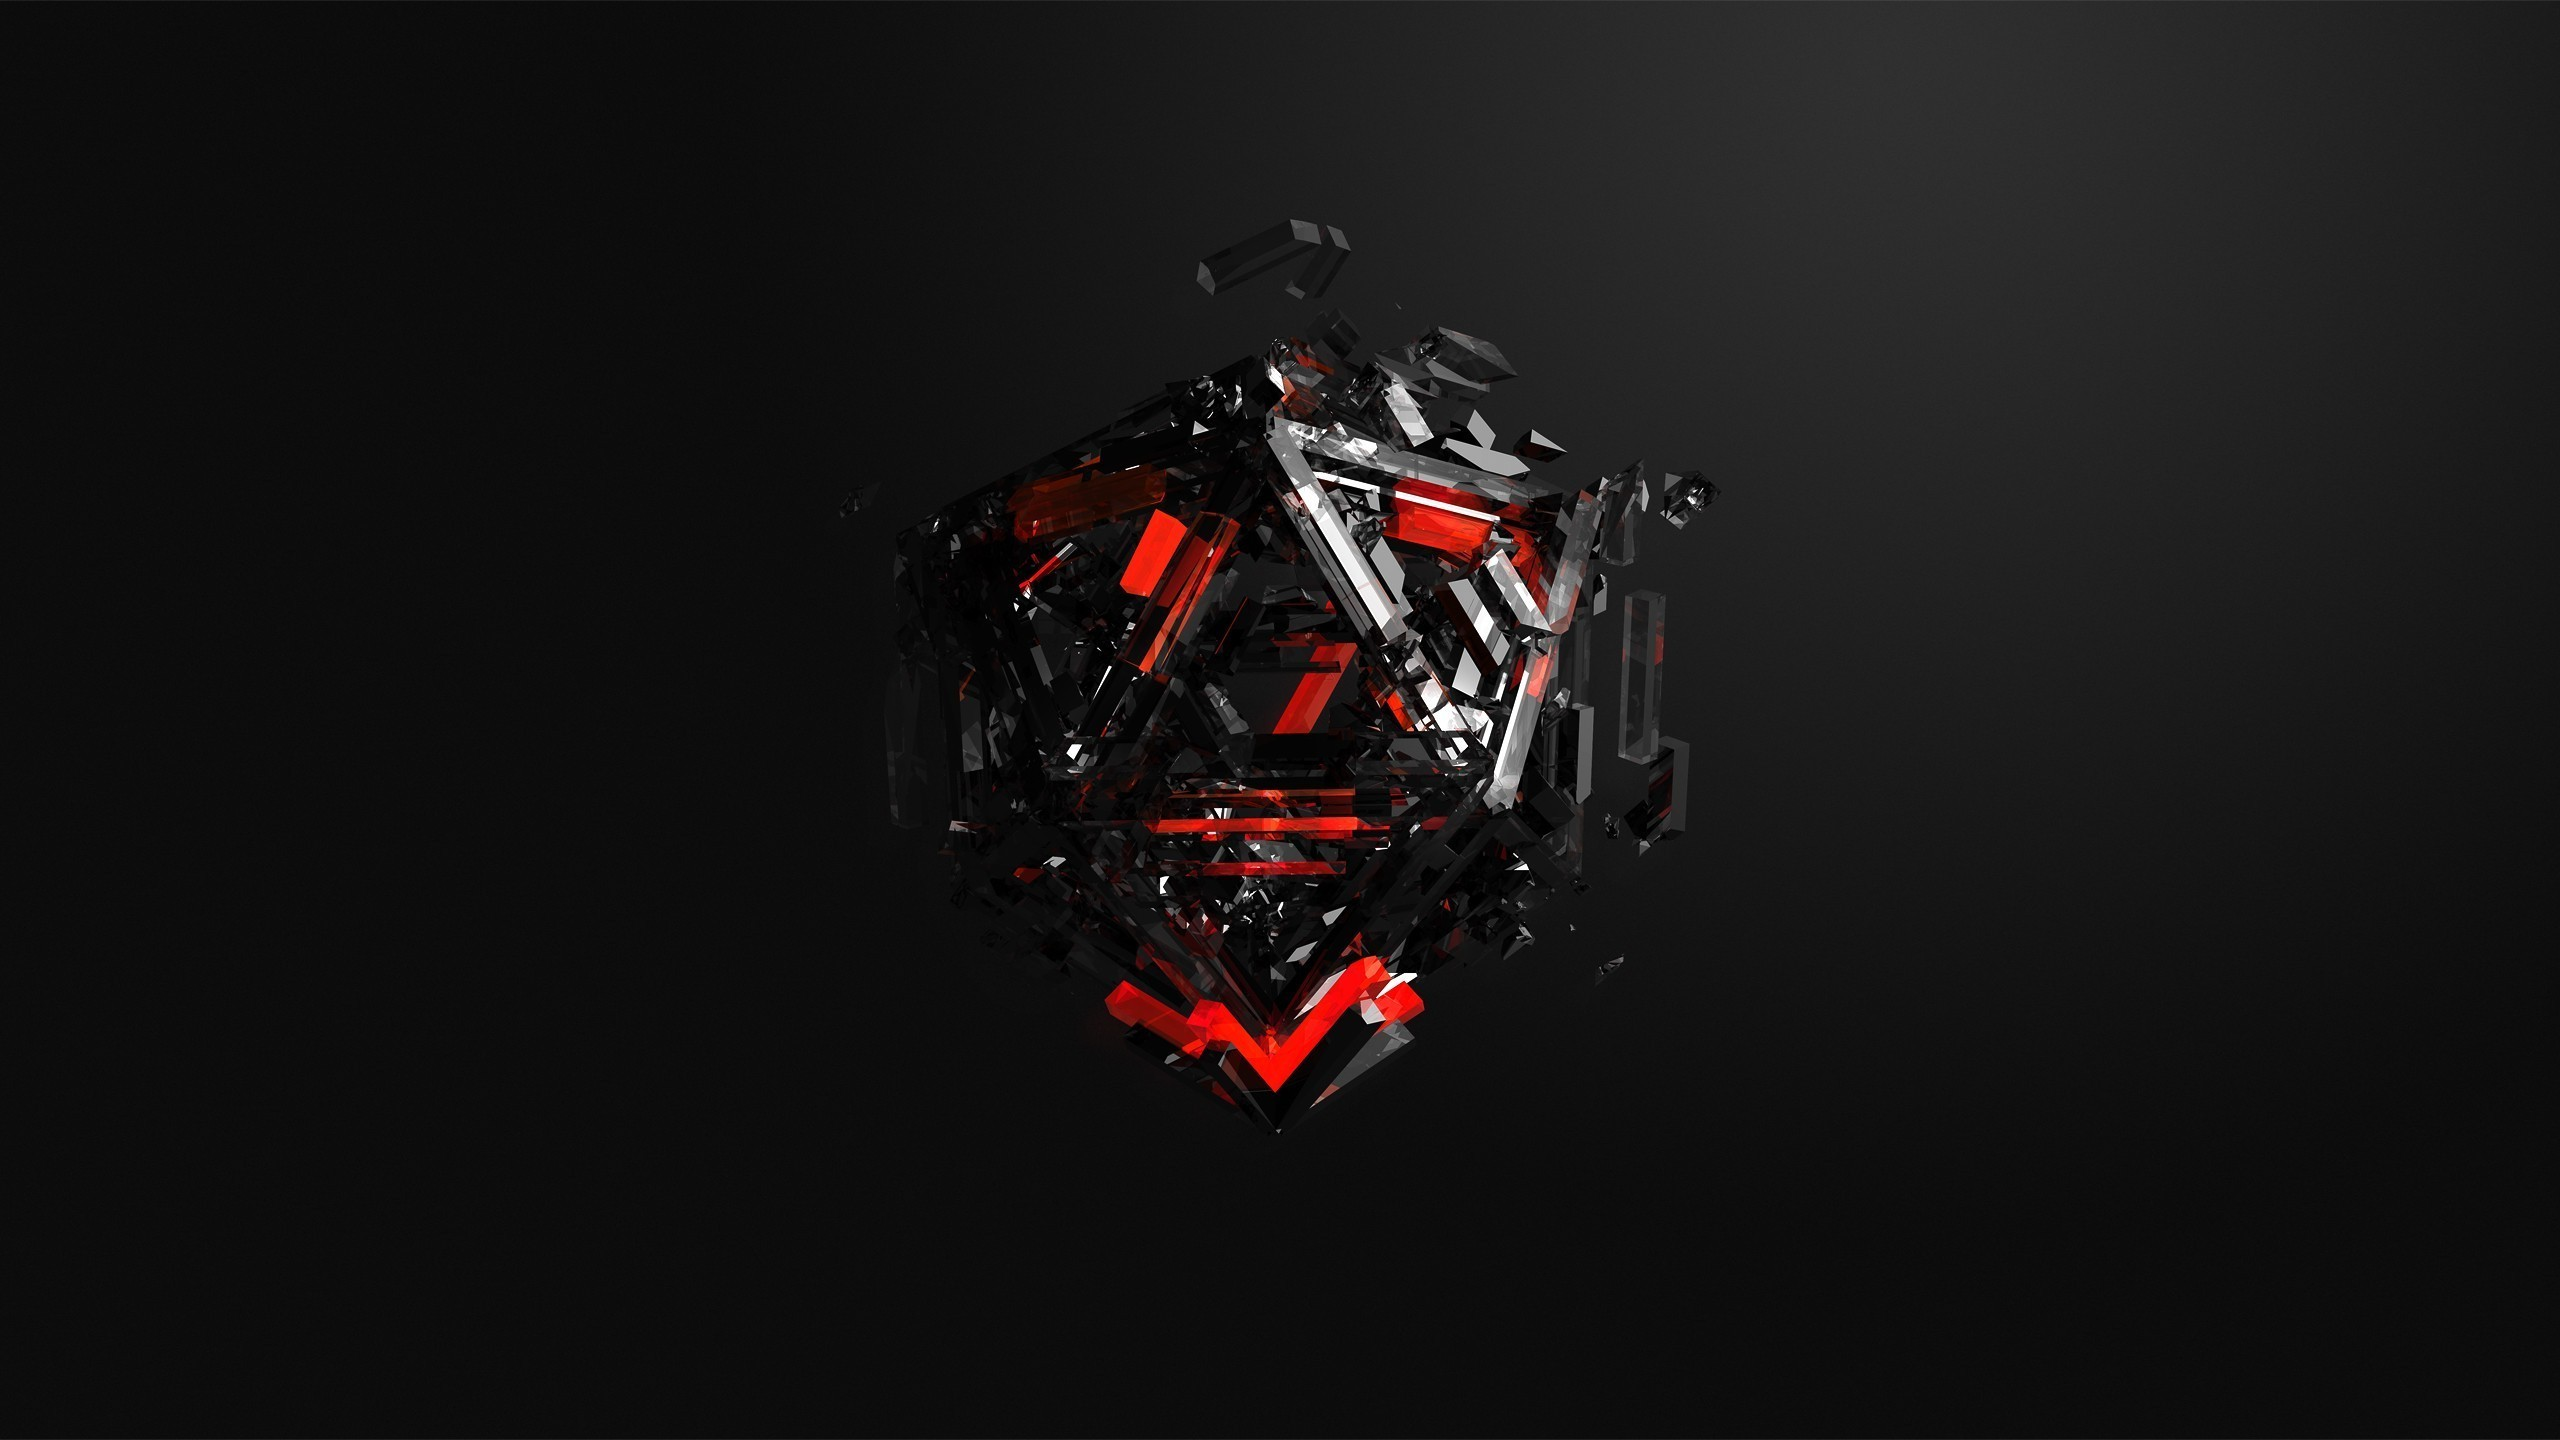 2560x1440 Black Red Wallpaper - Android Apps on Google Play